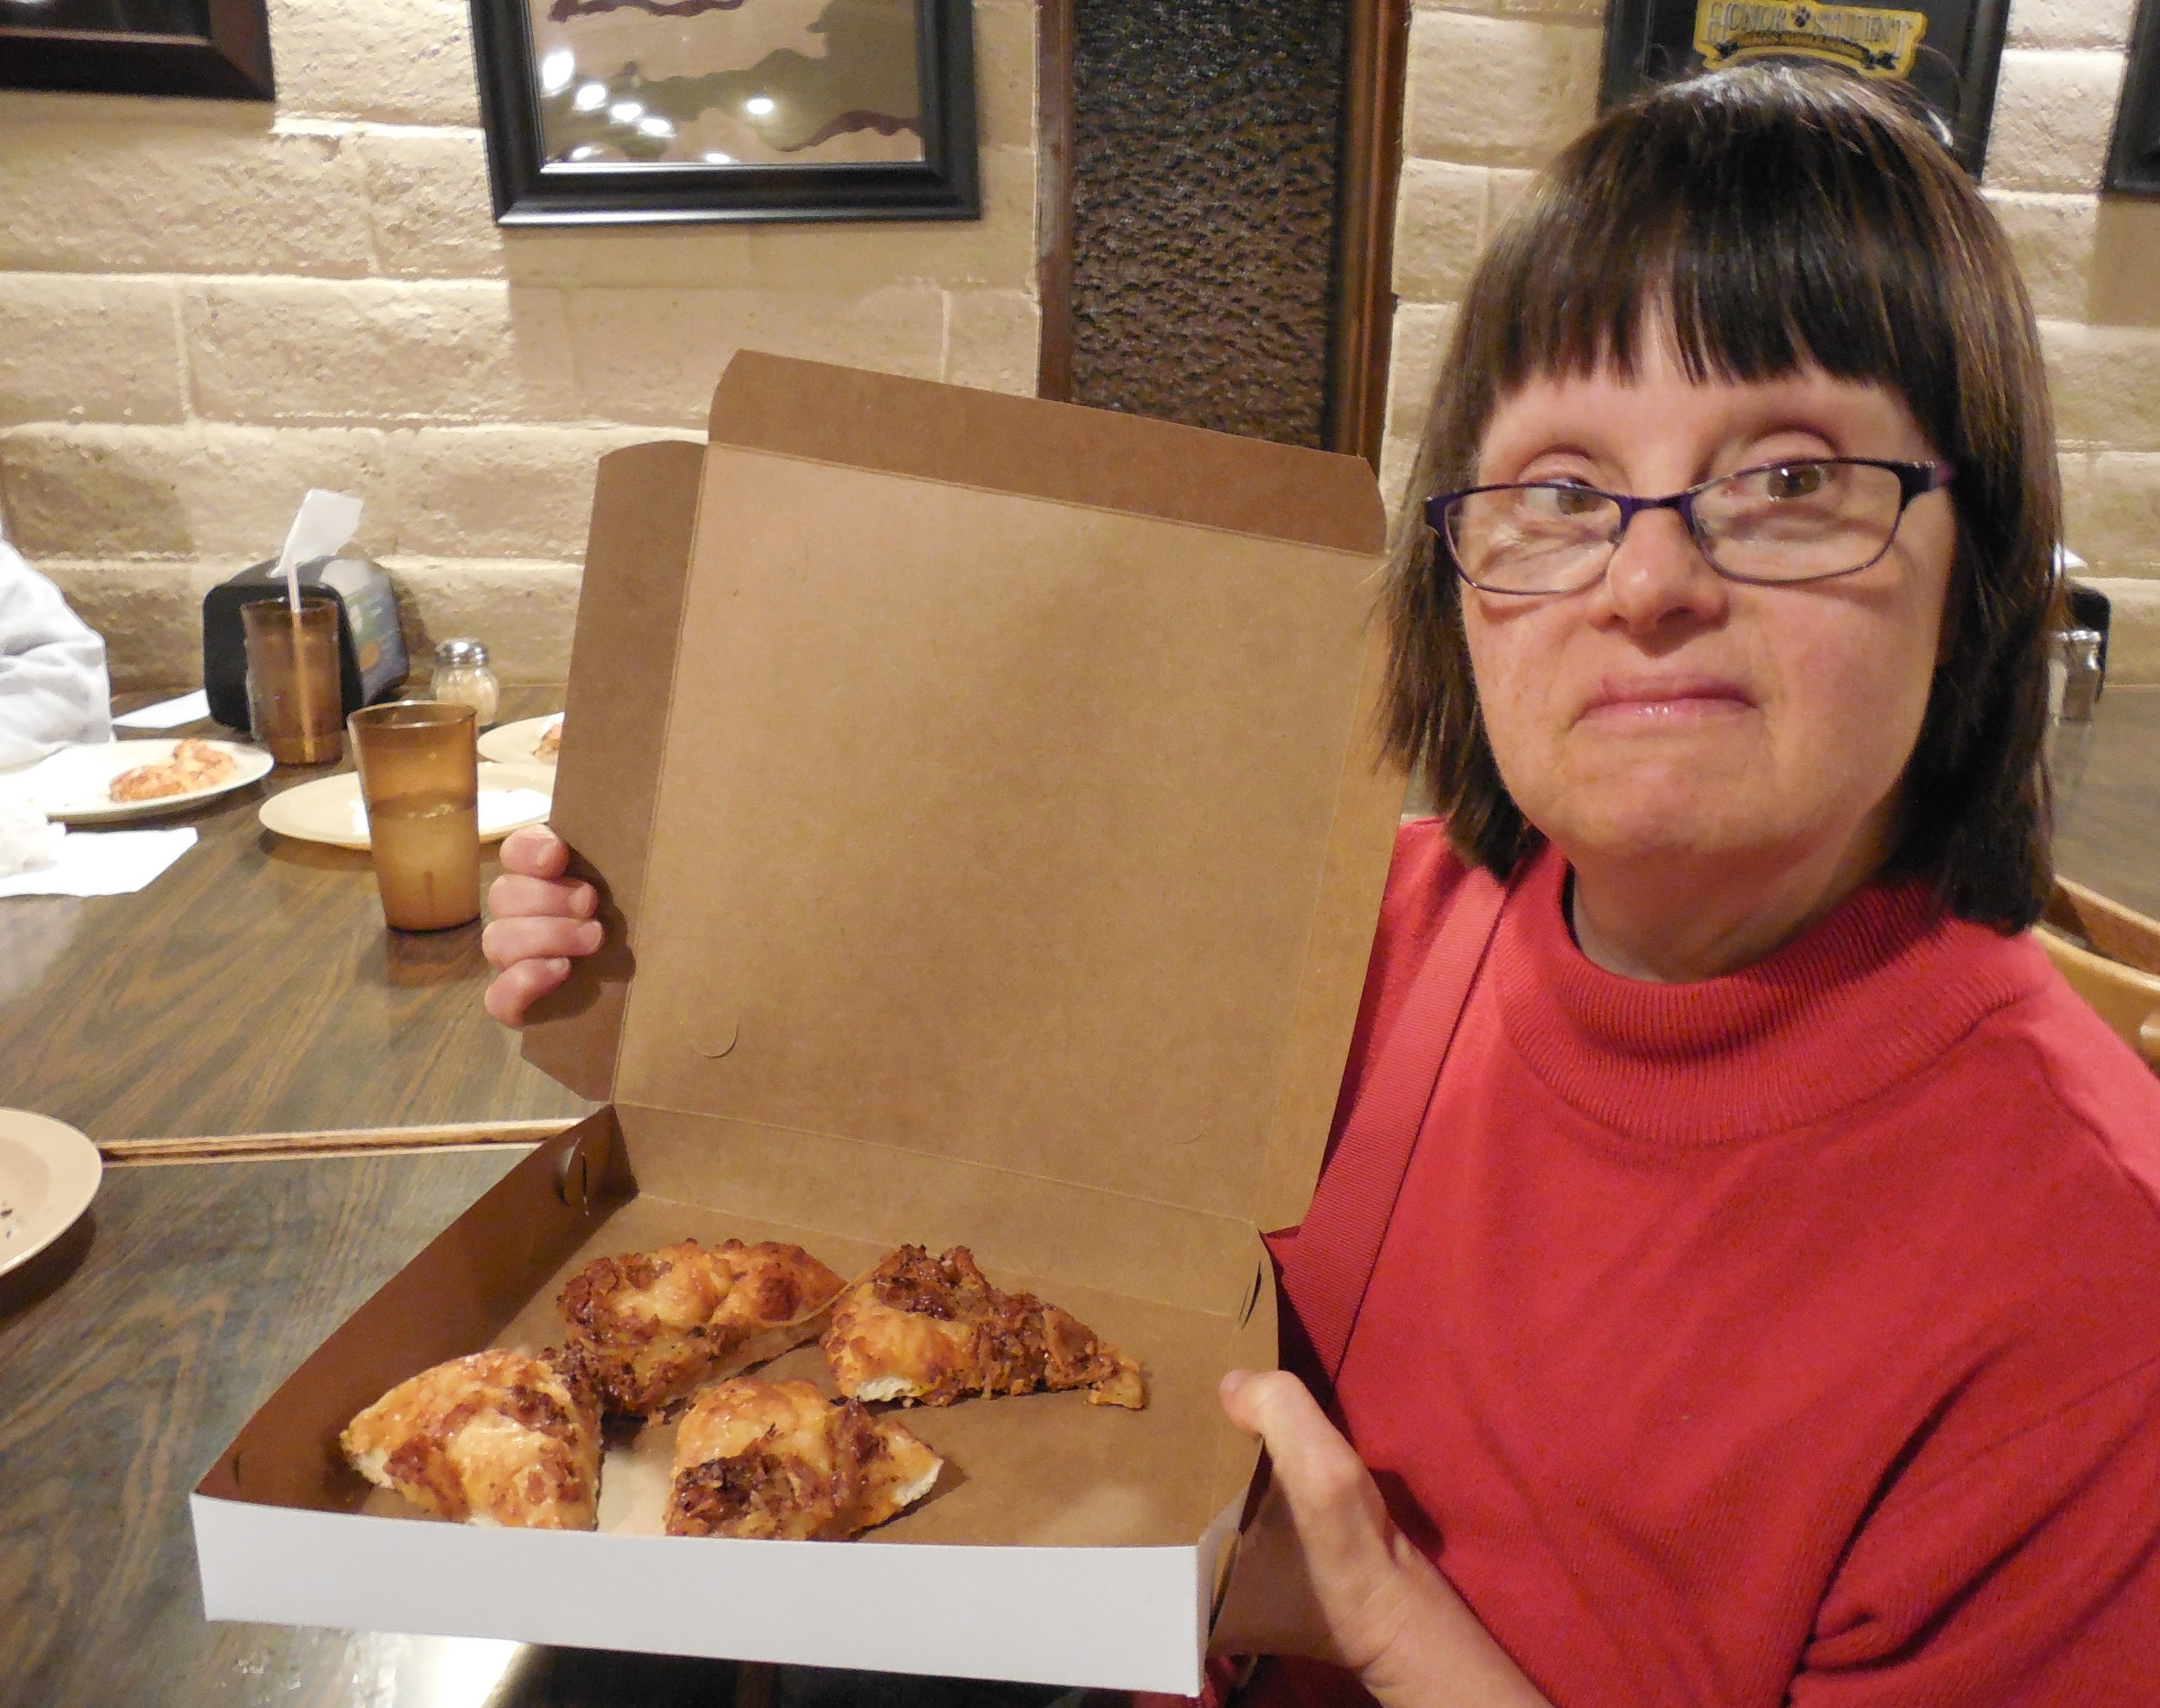 Diedre With Pizza on Game Night